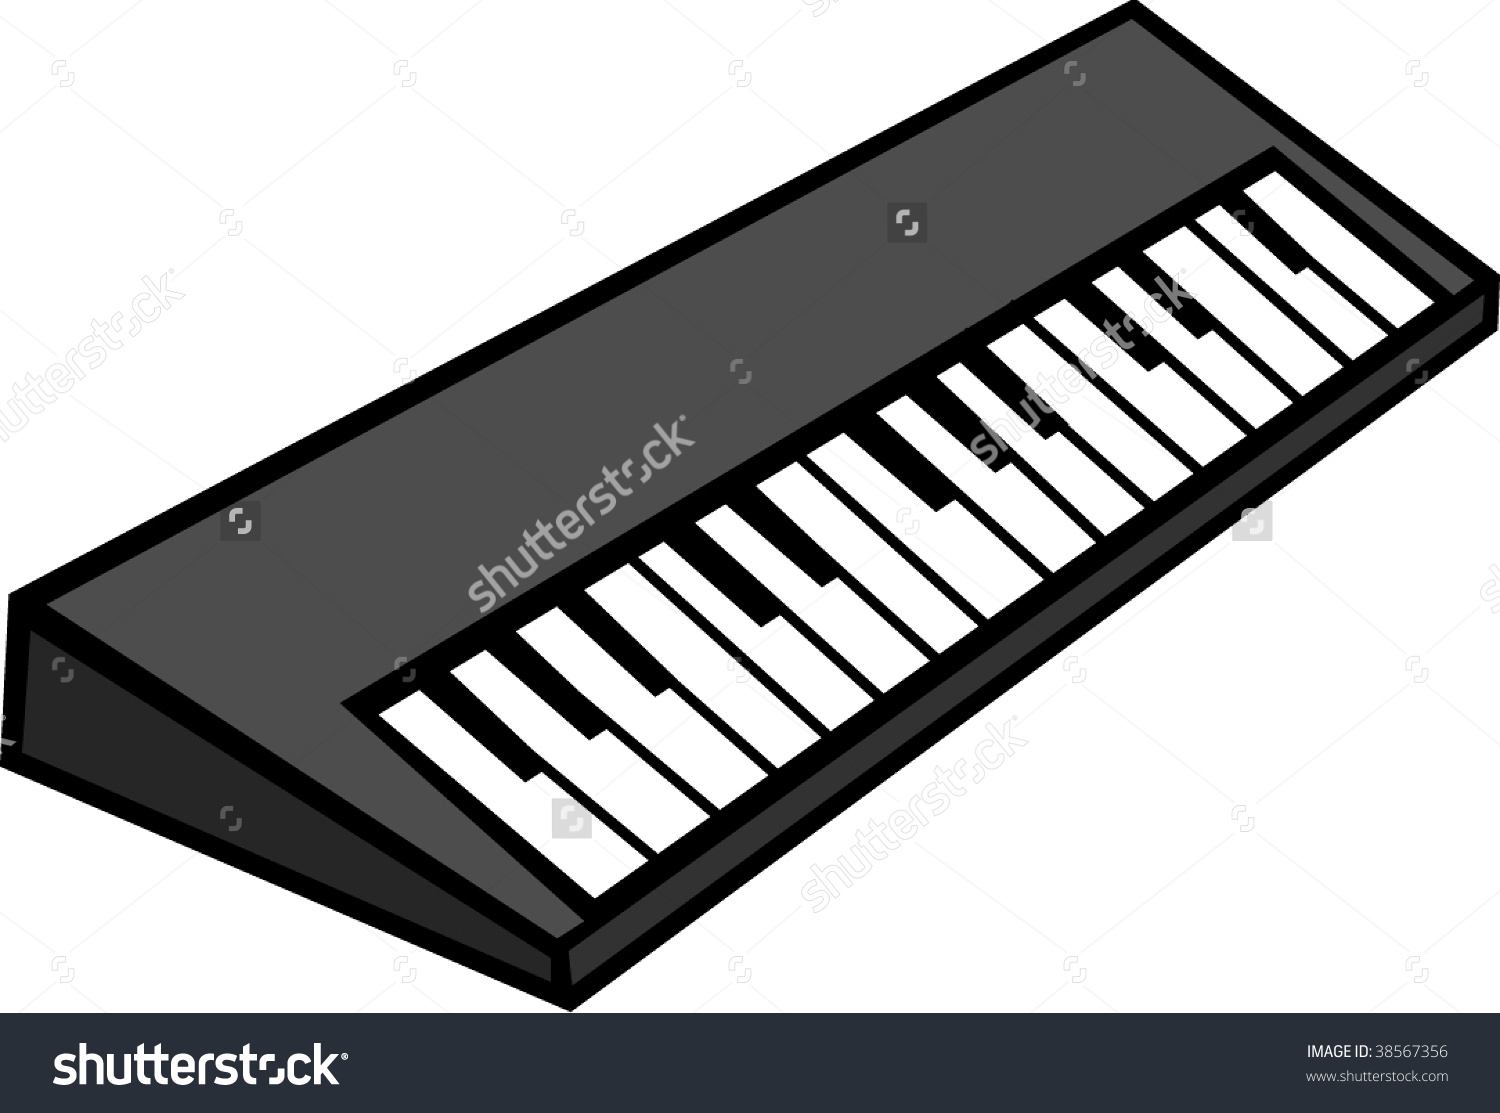 keyboard instrument clipart clipground rv clipart pictures rv clipart images